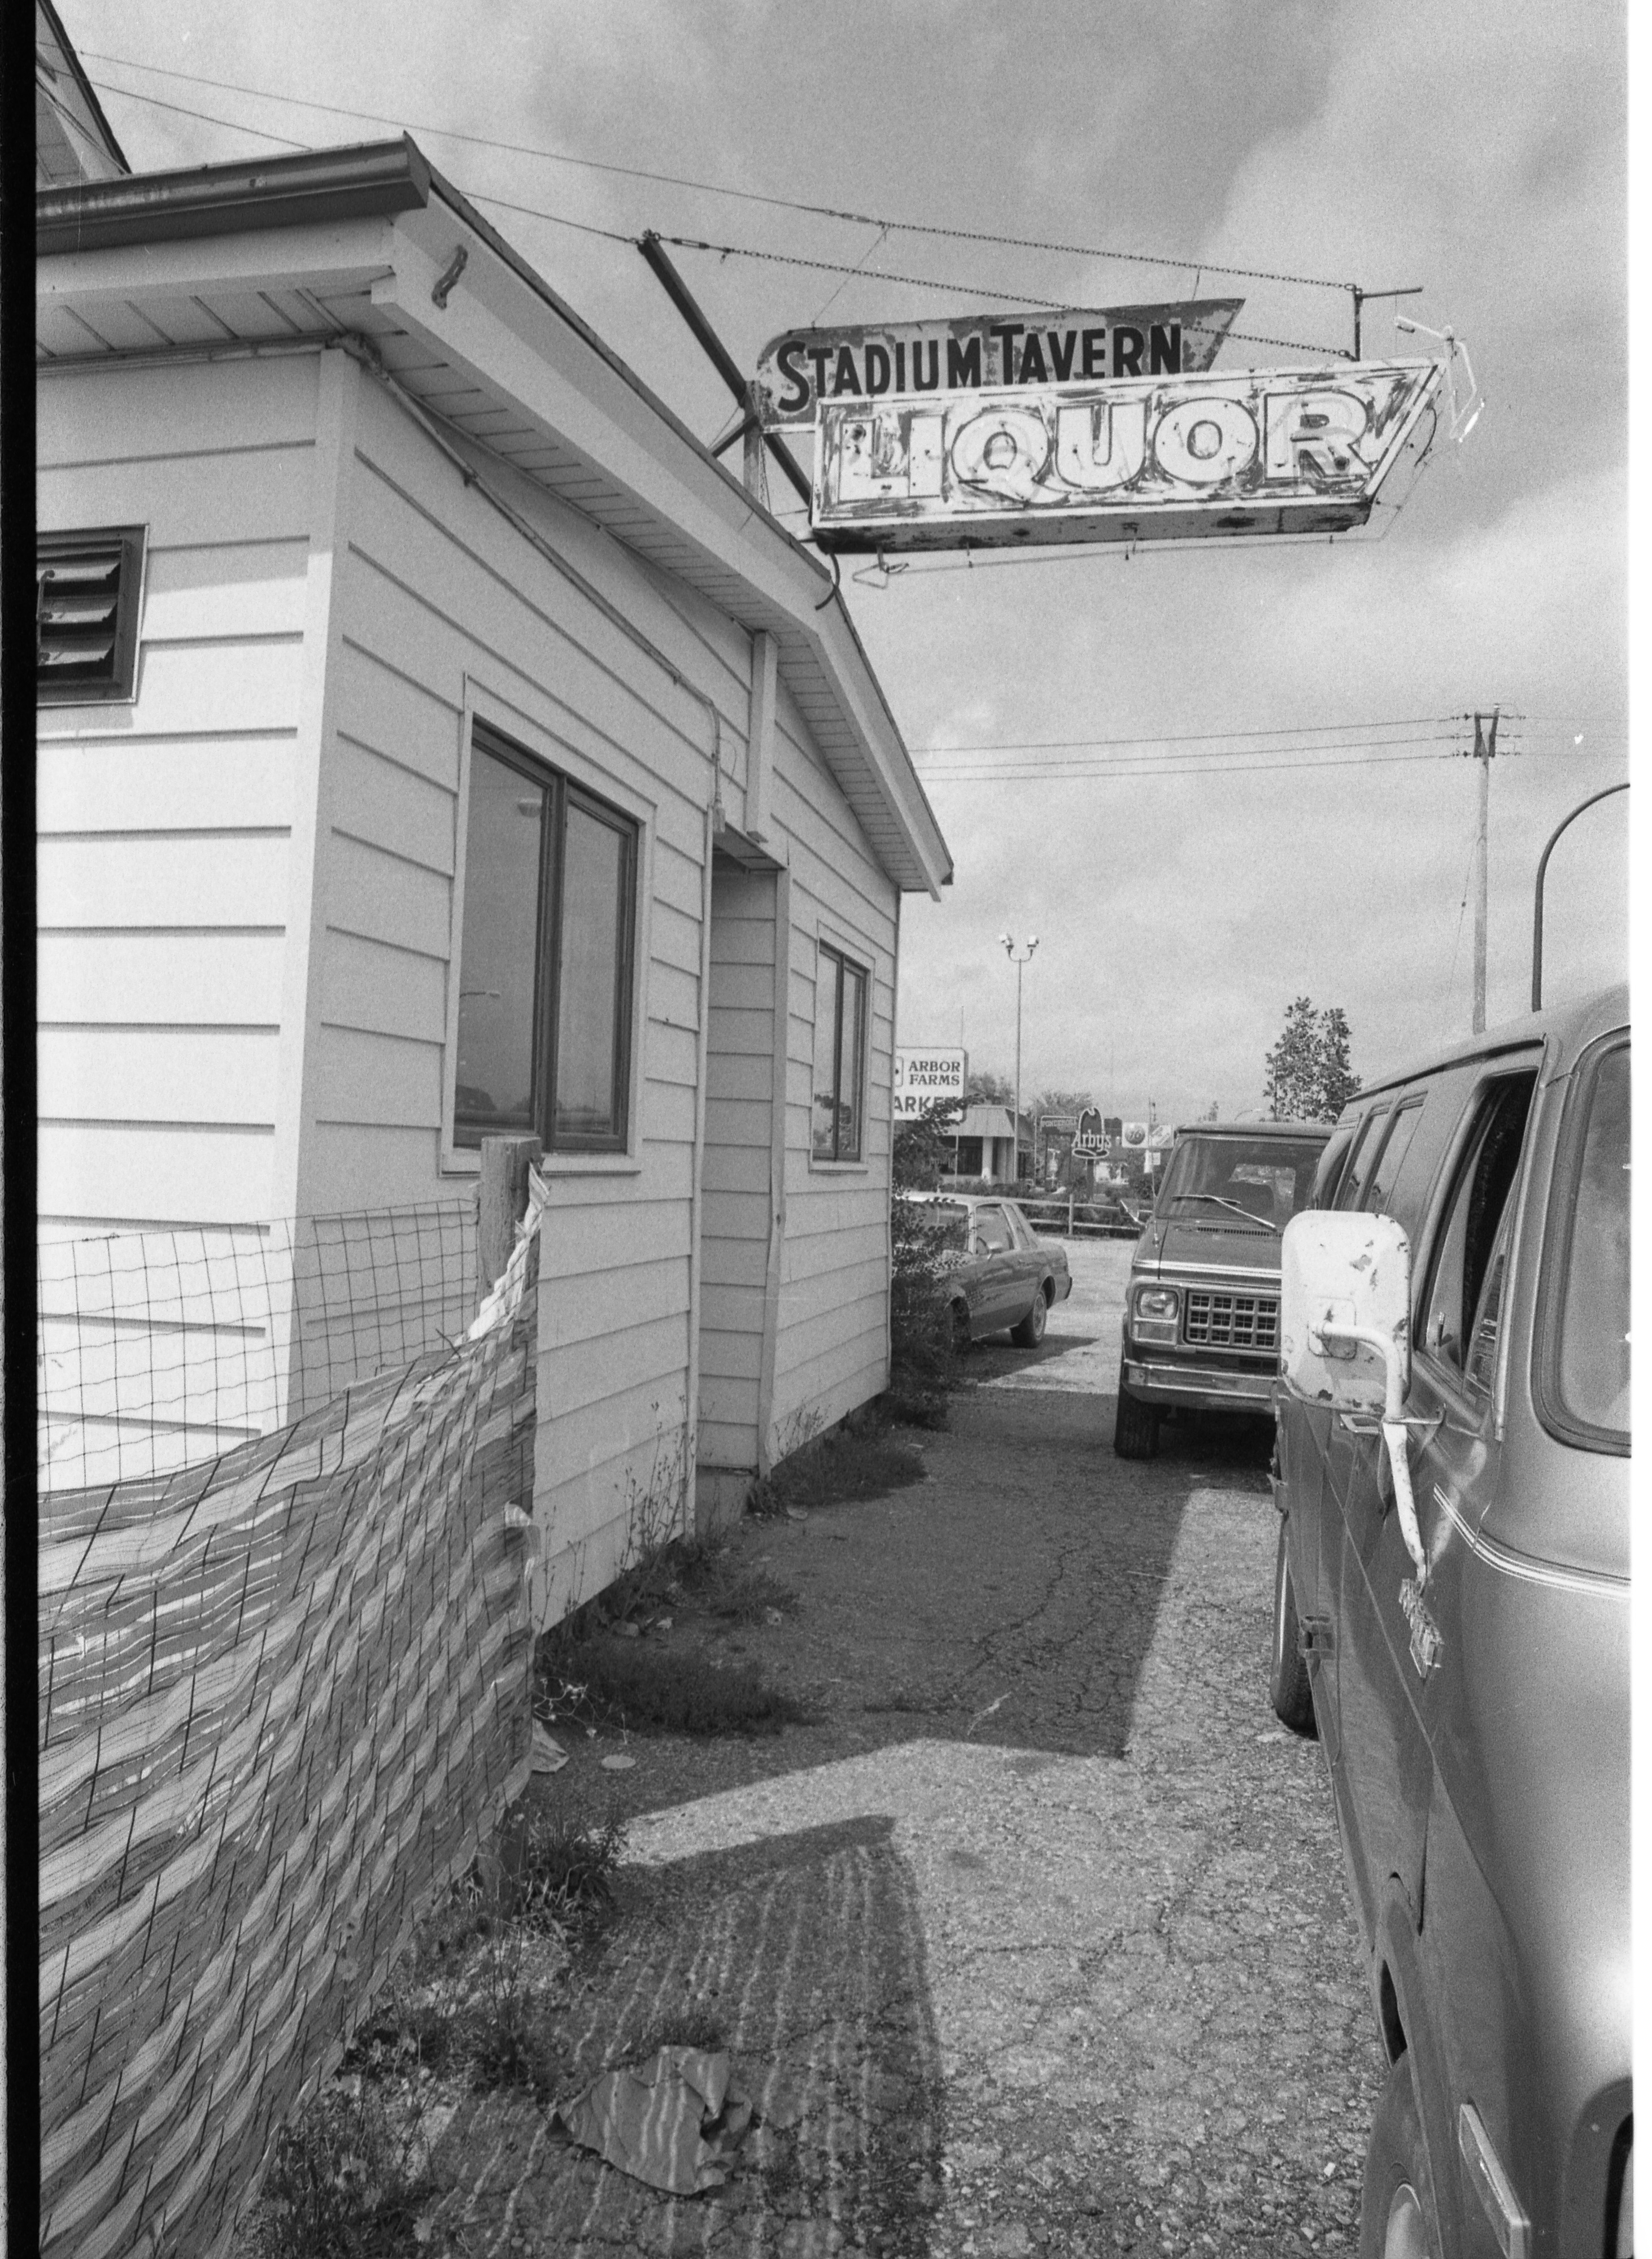 Familiar Sign Going Away as Stadium Tavern Closes Down, September 1985 image